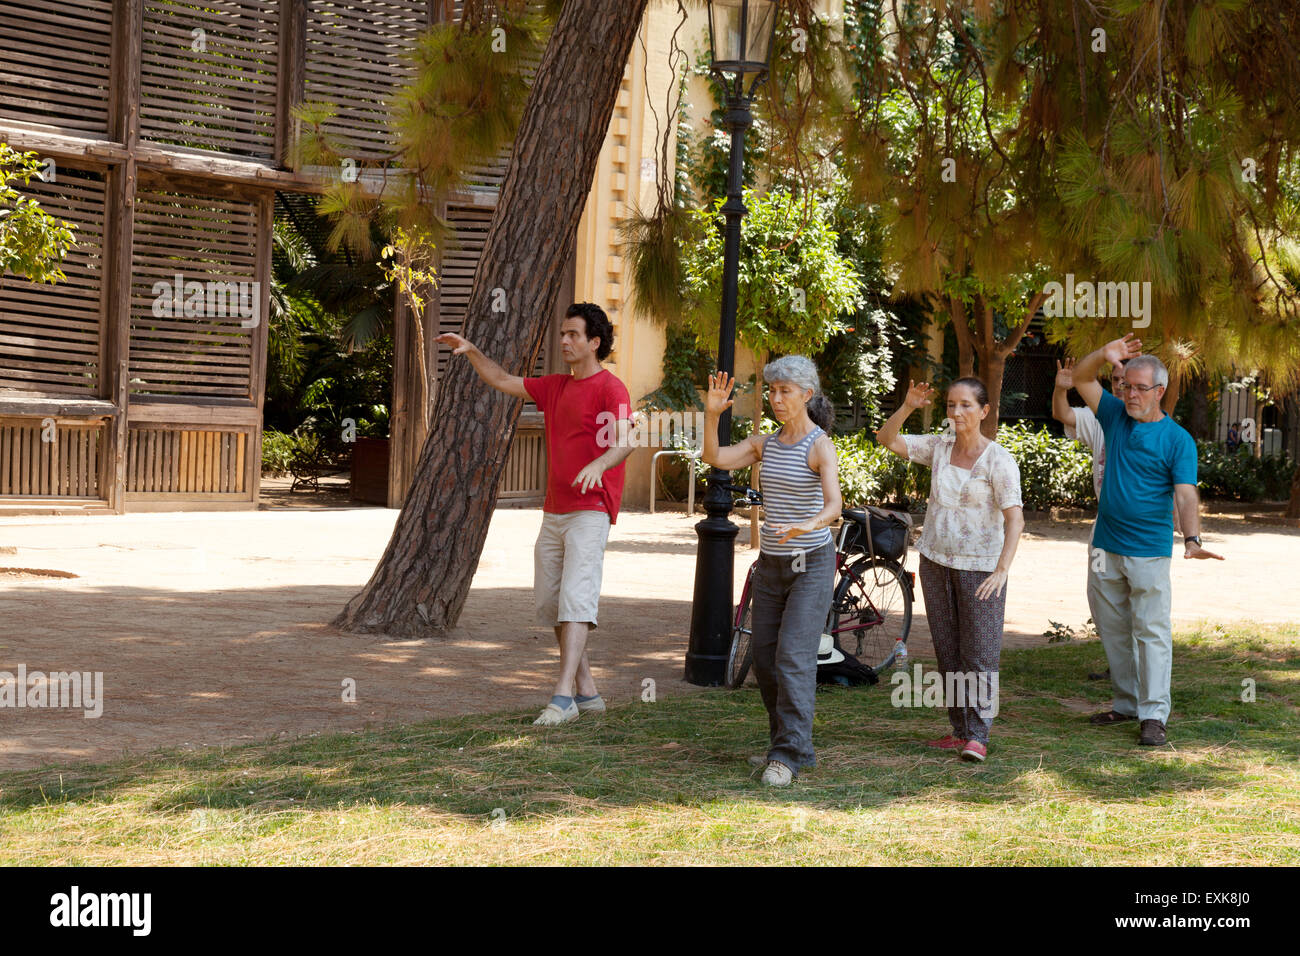 Local older people doing a Tai Chi class in a group, Parc de la Ciutadella ( Ciutadella Park ), Barcelona, Spain - Stock Image